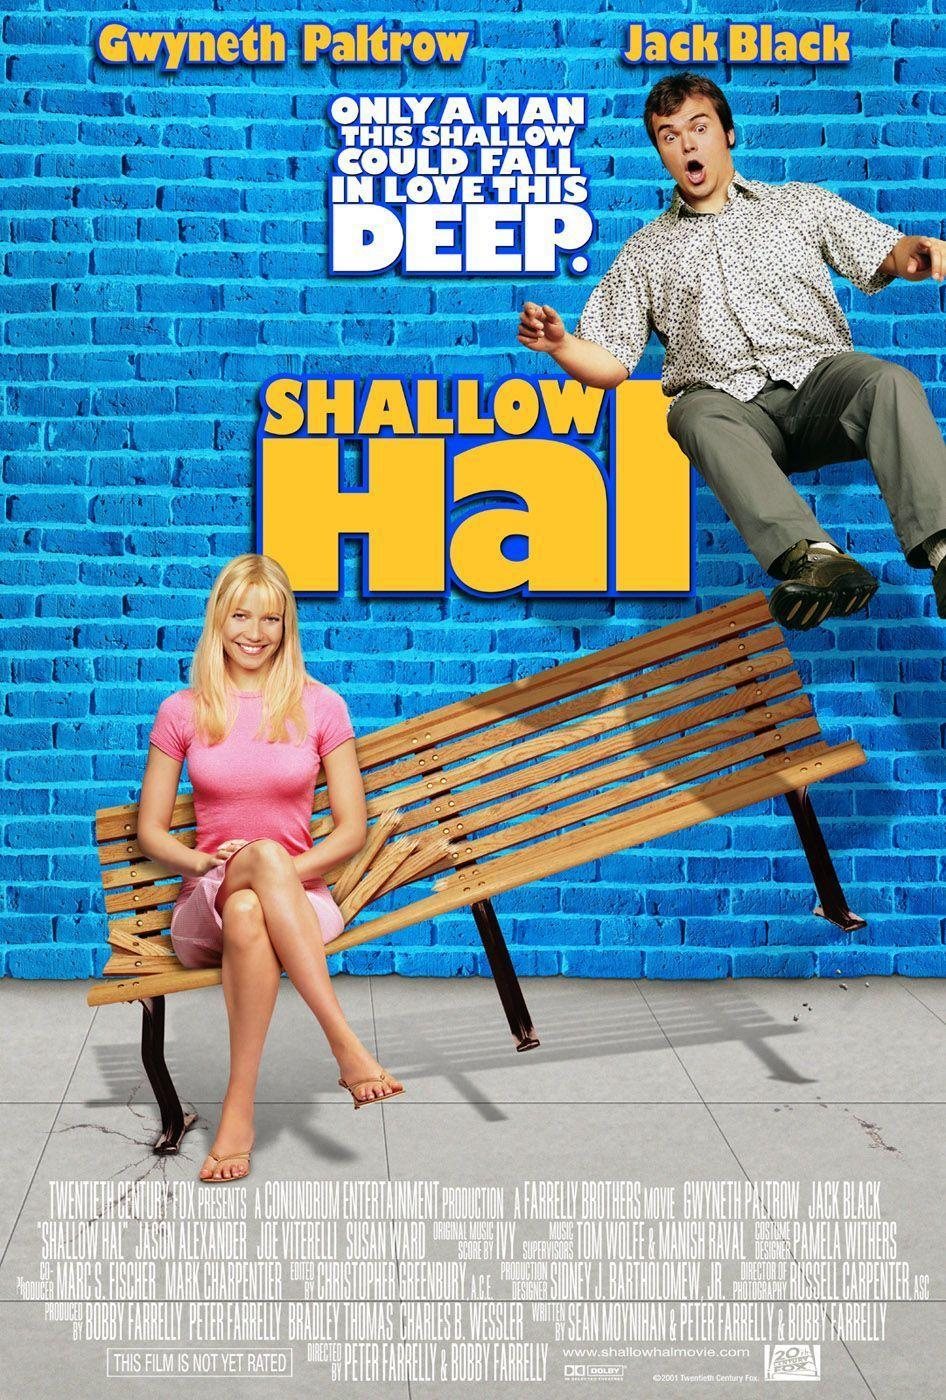 <p>Just as campy as the 2000s, <em>Shallow Hal</em> with peak Jack Black tells a story that goes beyond looks. Hal (Black) gets hypnotized into seeing beauty even in the type of women that he wouldn't consider attractive. Released on November 1, 2001, this one saw a lot of extended success upon its DVD release. </p>